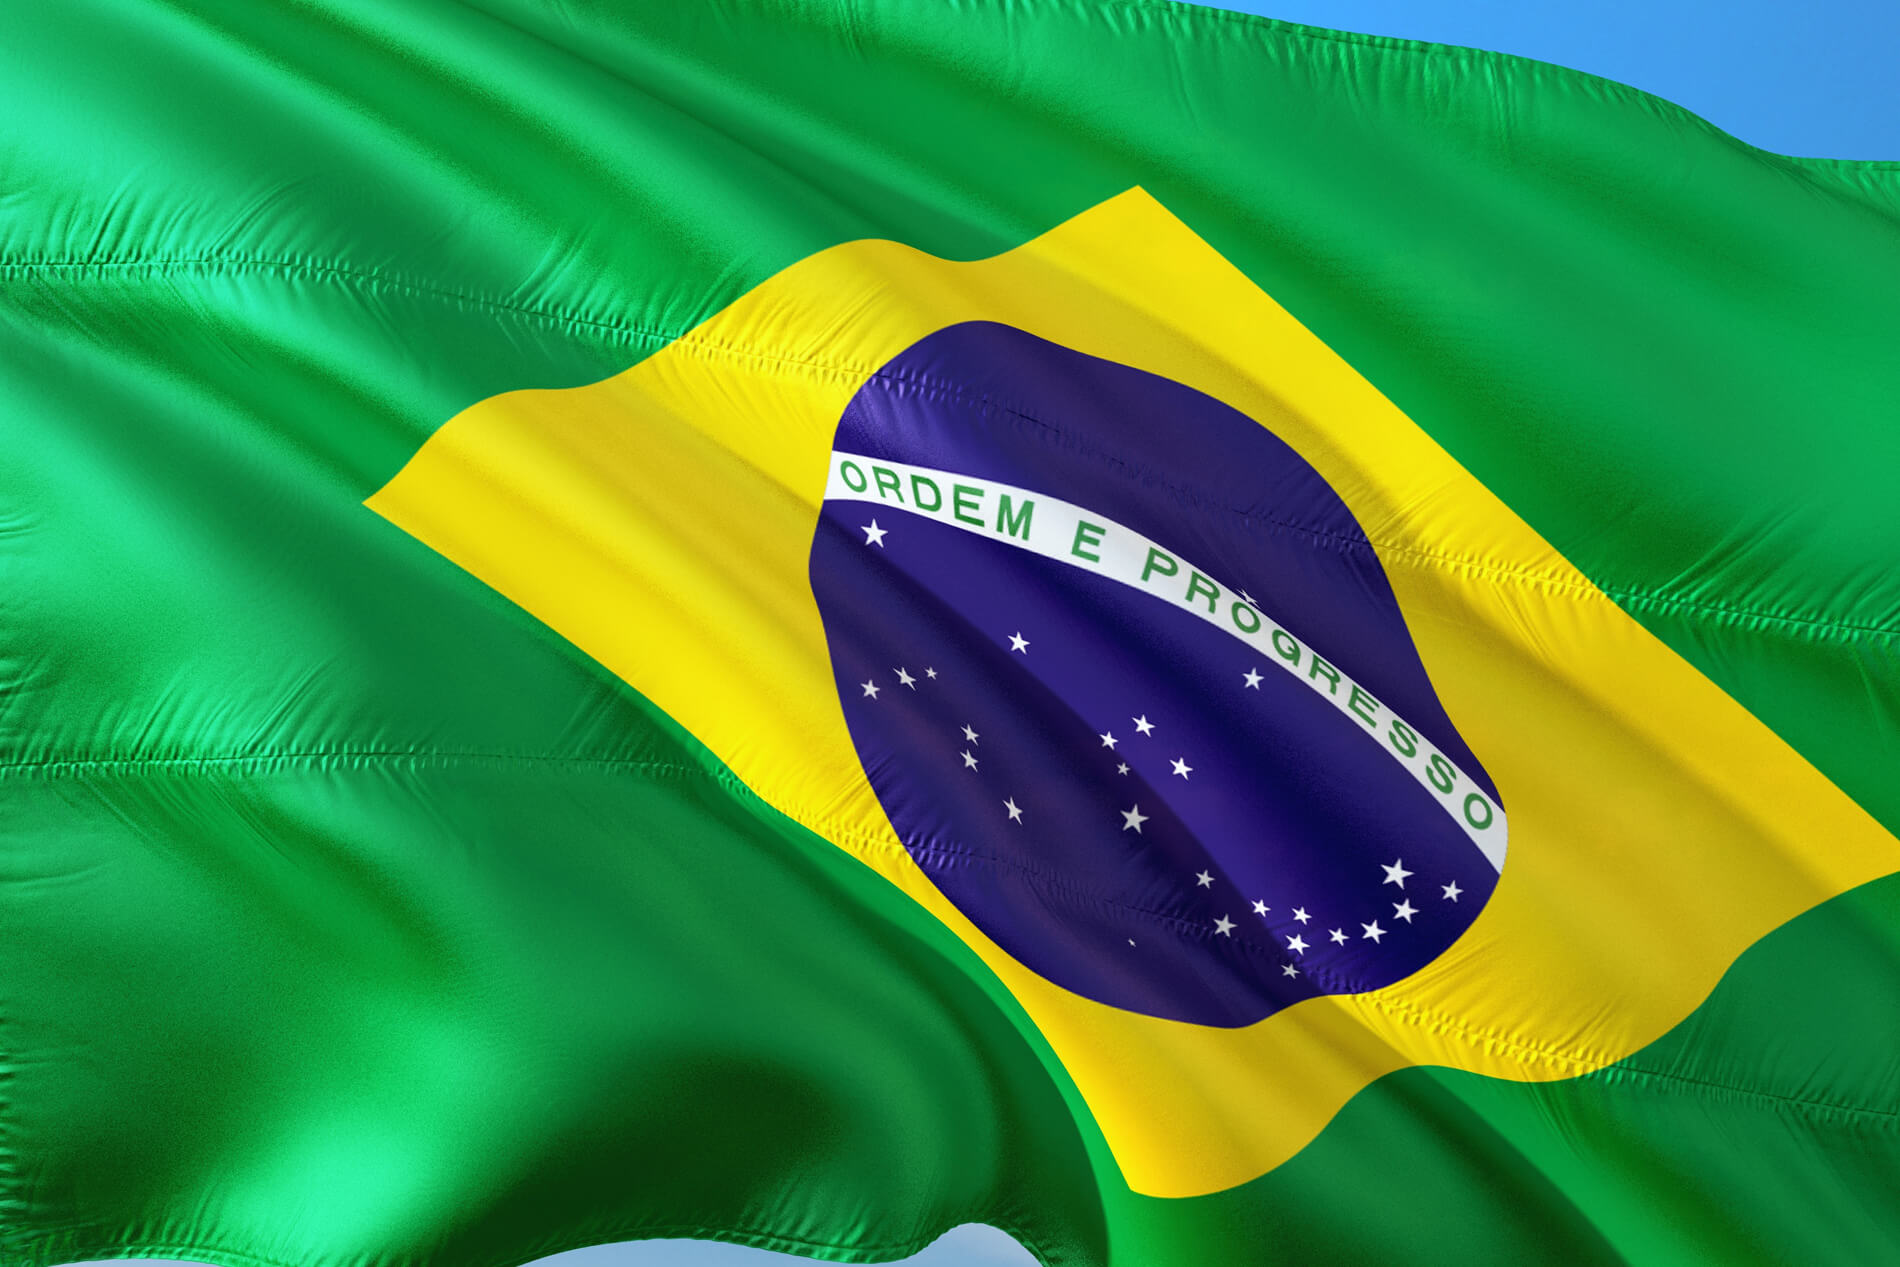 Arab countries import Halal beef from Brazil